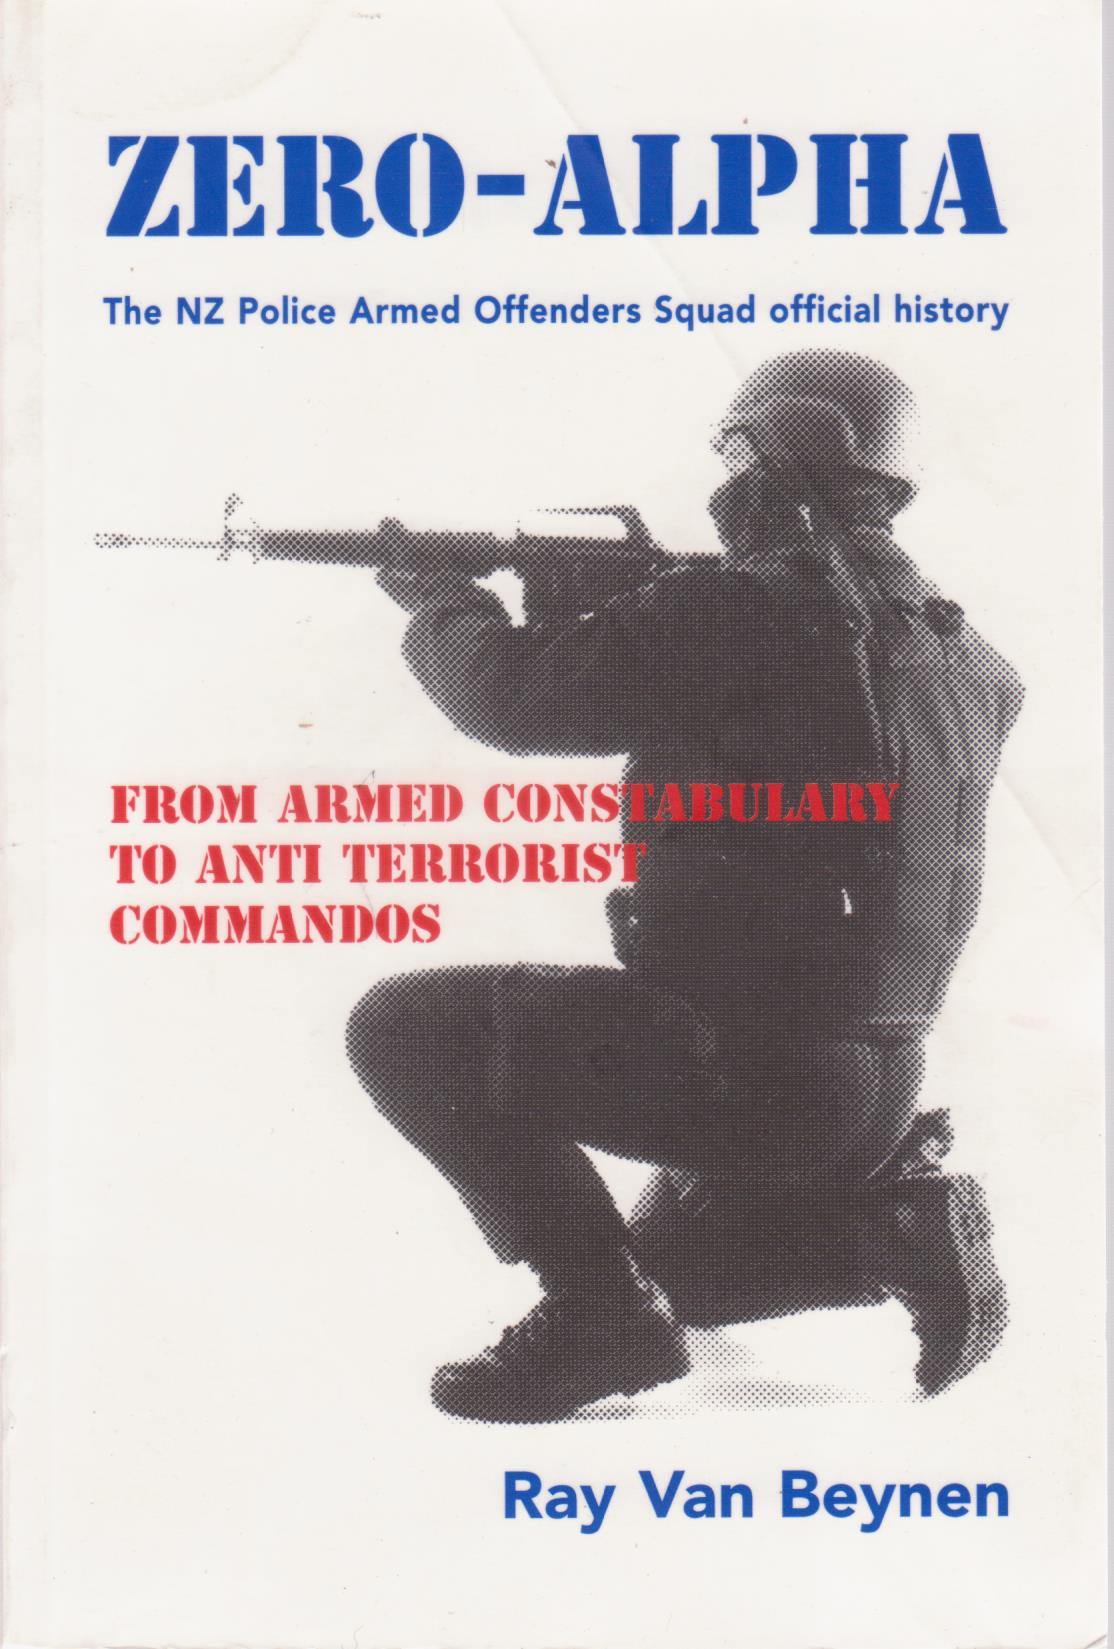 cover image of Zero-Alpha The New Zealand Armed Offenders Squad official history for sale in New Zealand